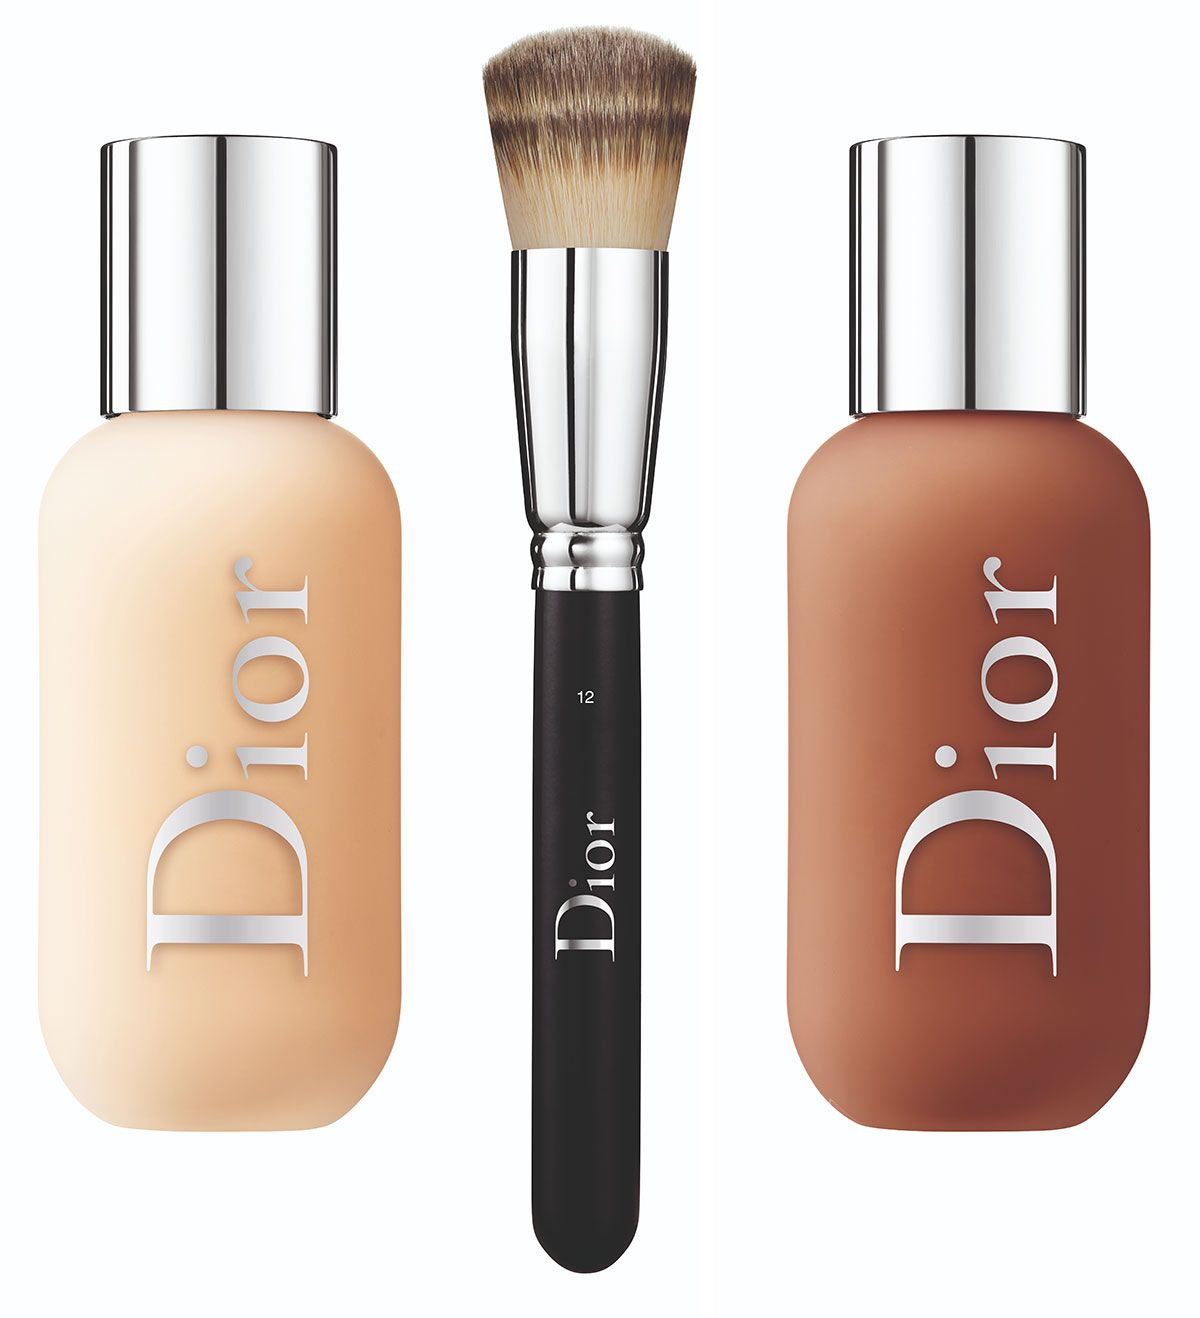 19ca839f93 Dior Backstage Face and Body Foundation ($40.00) will be available ...